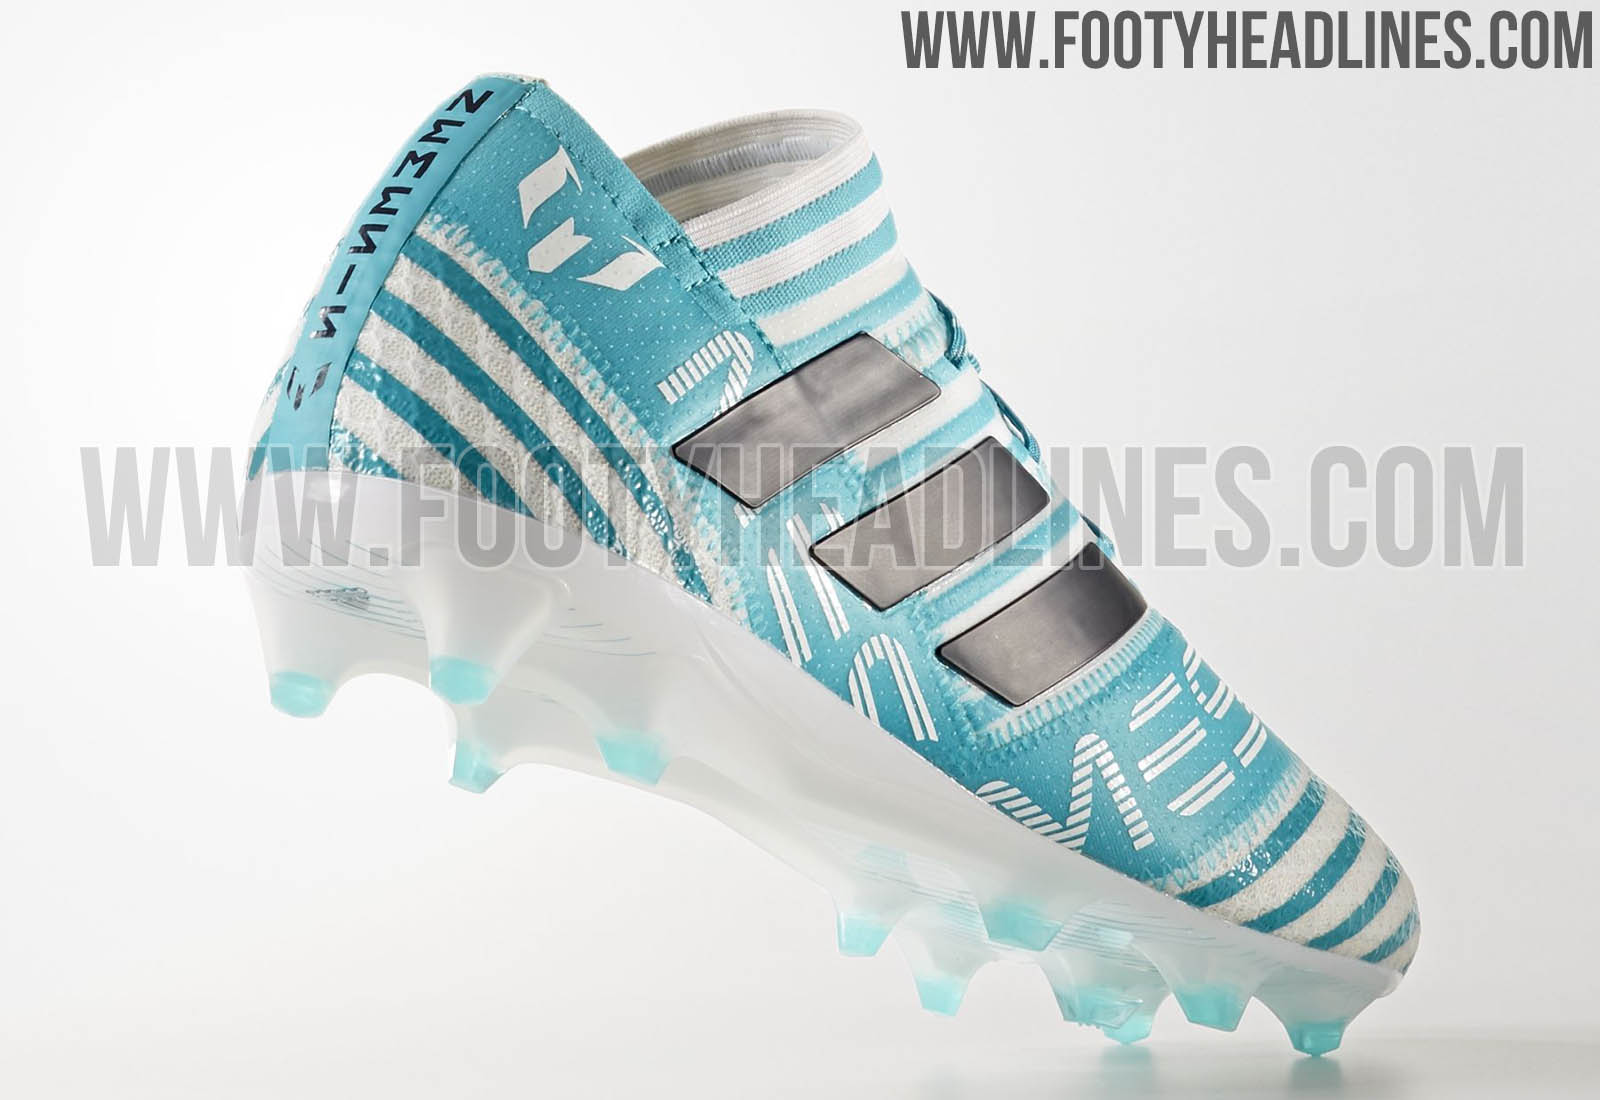 e127505bc263 Adidas Nemeziz Messi Ocean Storm 2017-18 Boots Leaked - Leaked Soccer Cleats